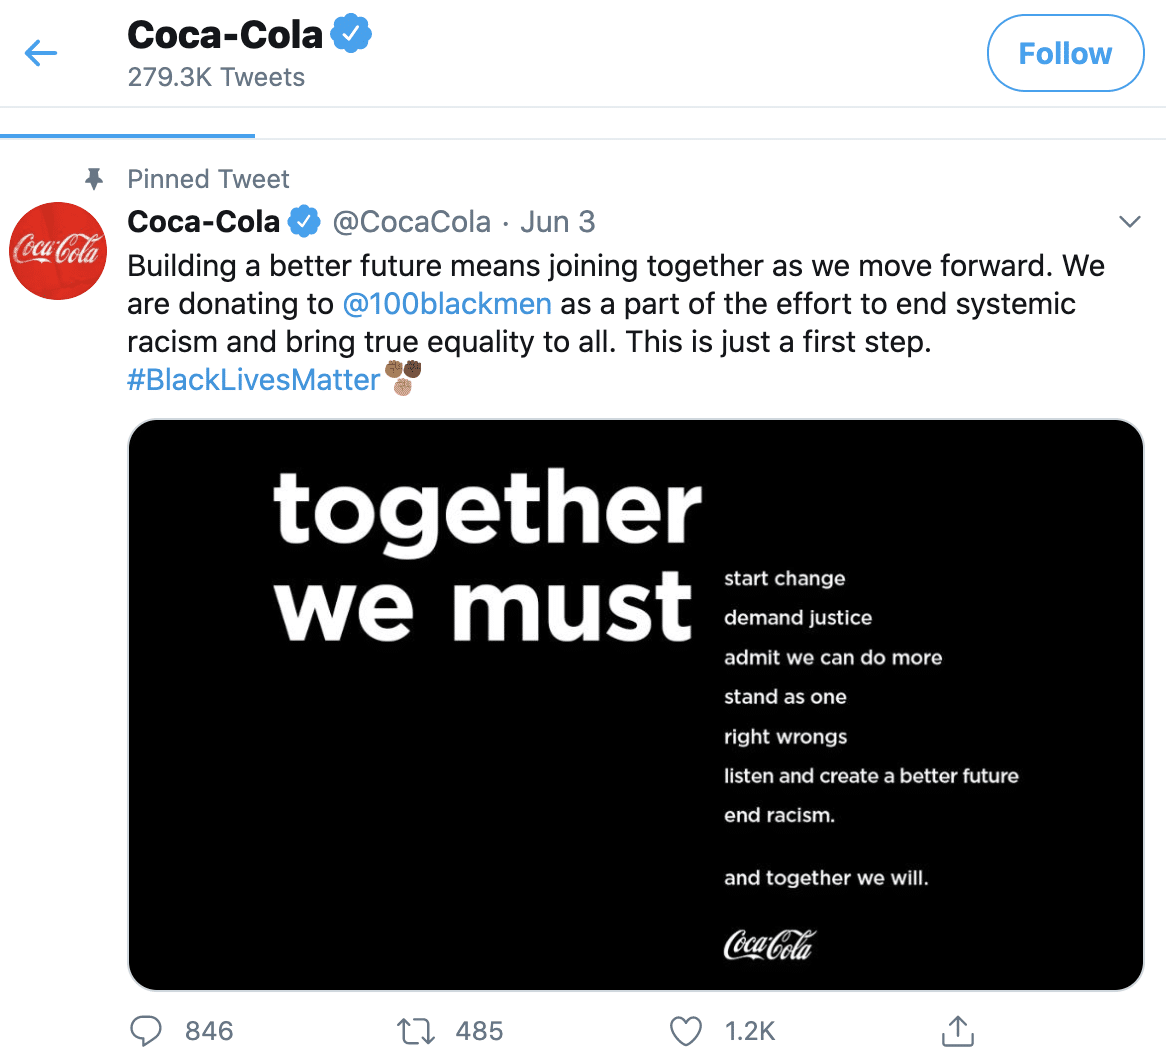 Coca Cola participating in Black Lives Matter movement